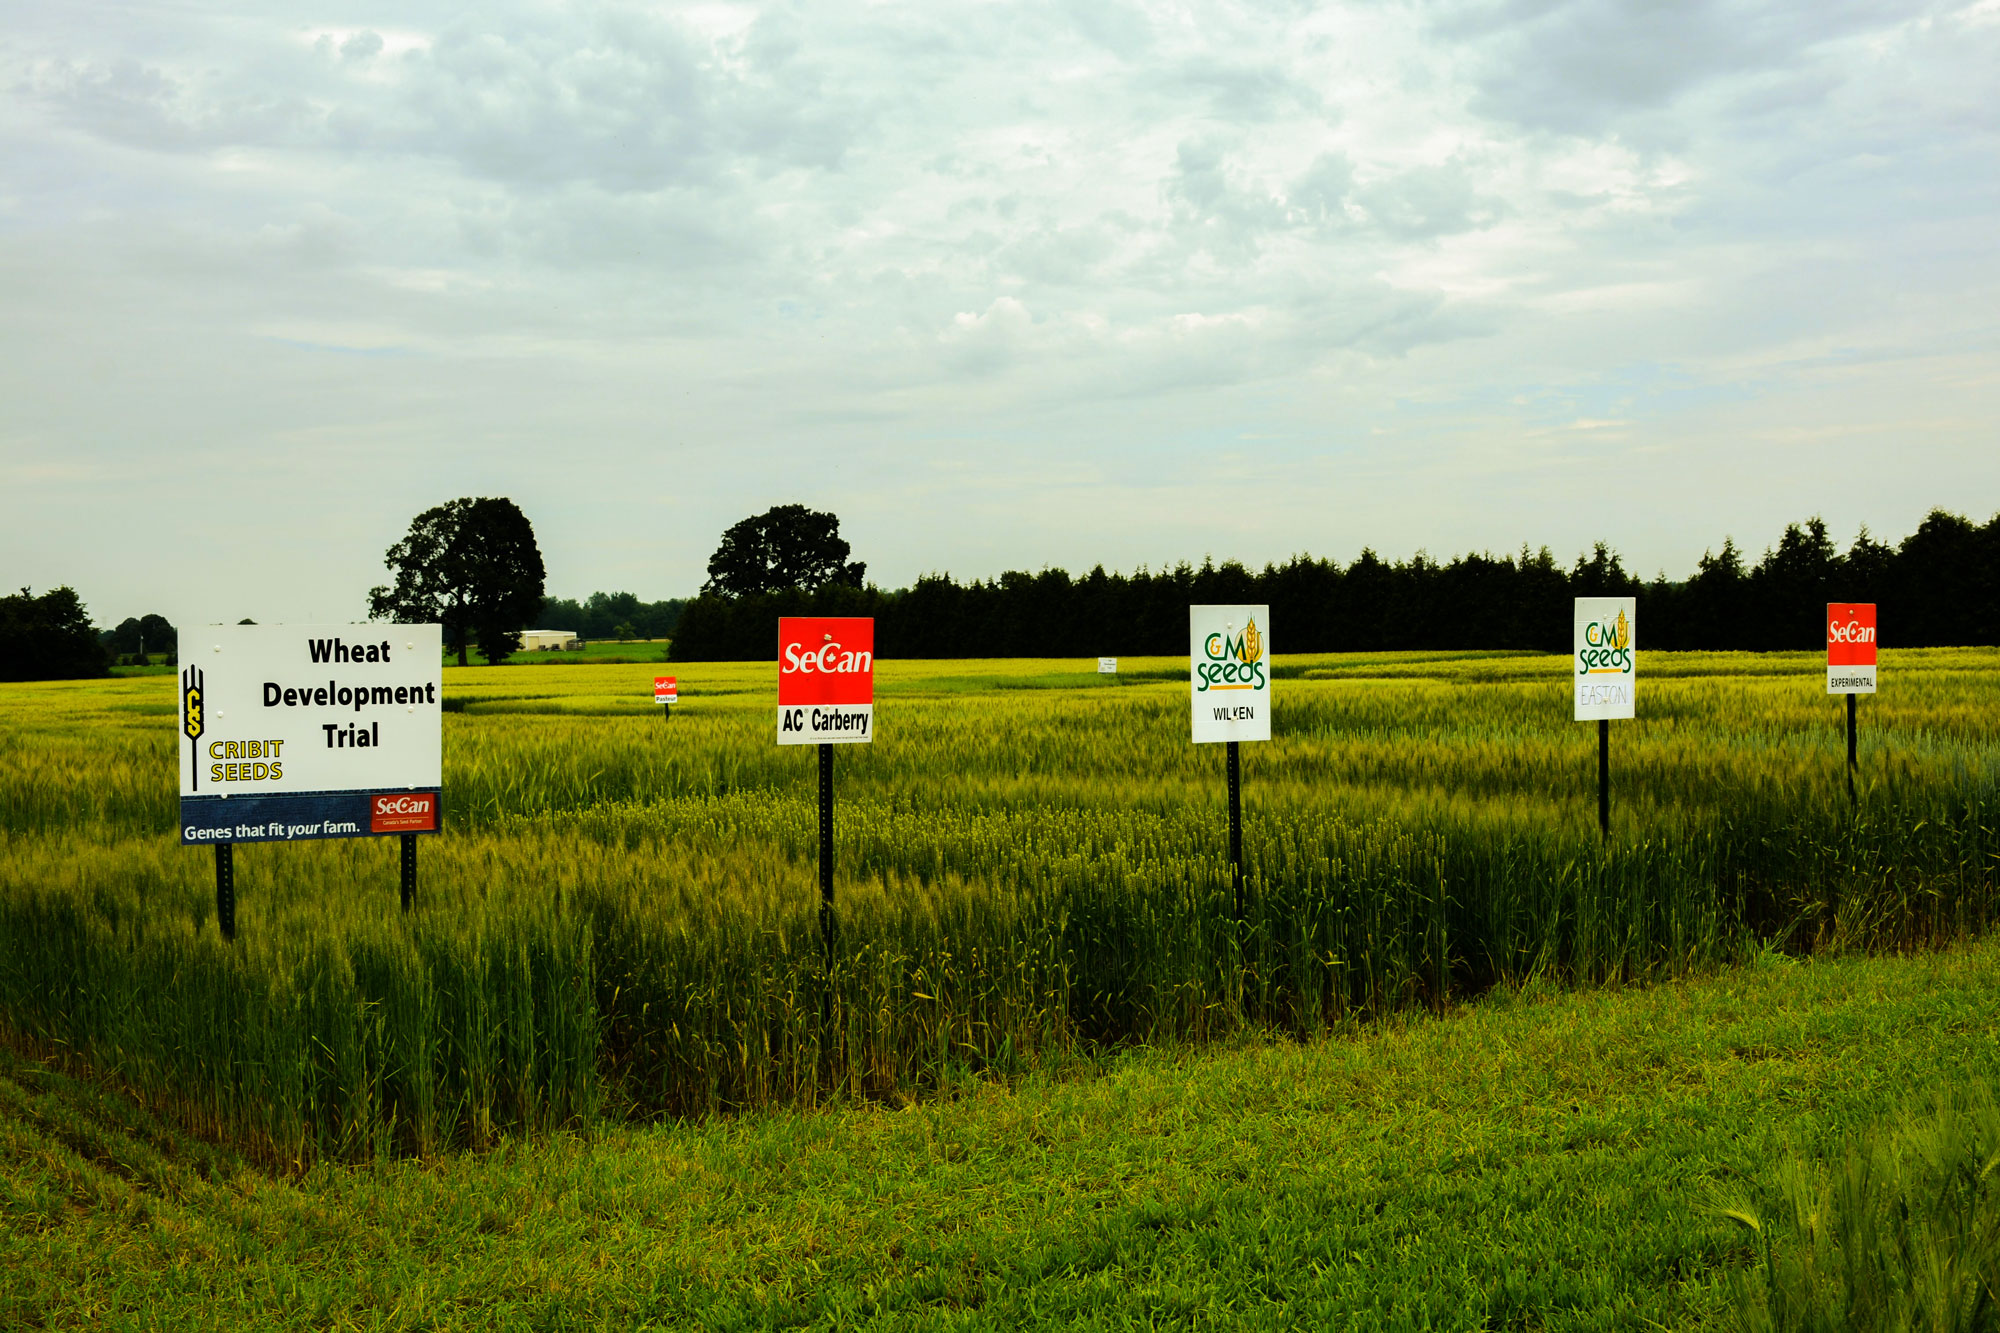 EXPERTS IN YOUR FIELDS - Our field success is your field success. Regional differences can have a huge impact on your farm's growing potential and success; our strength is providing locally tested varieties that perform well on your farm.LEARN MORE ABOUT OUR SEED VARIETIES